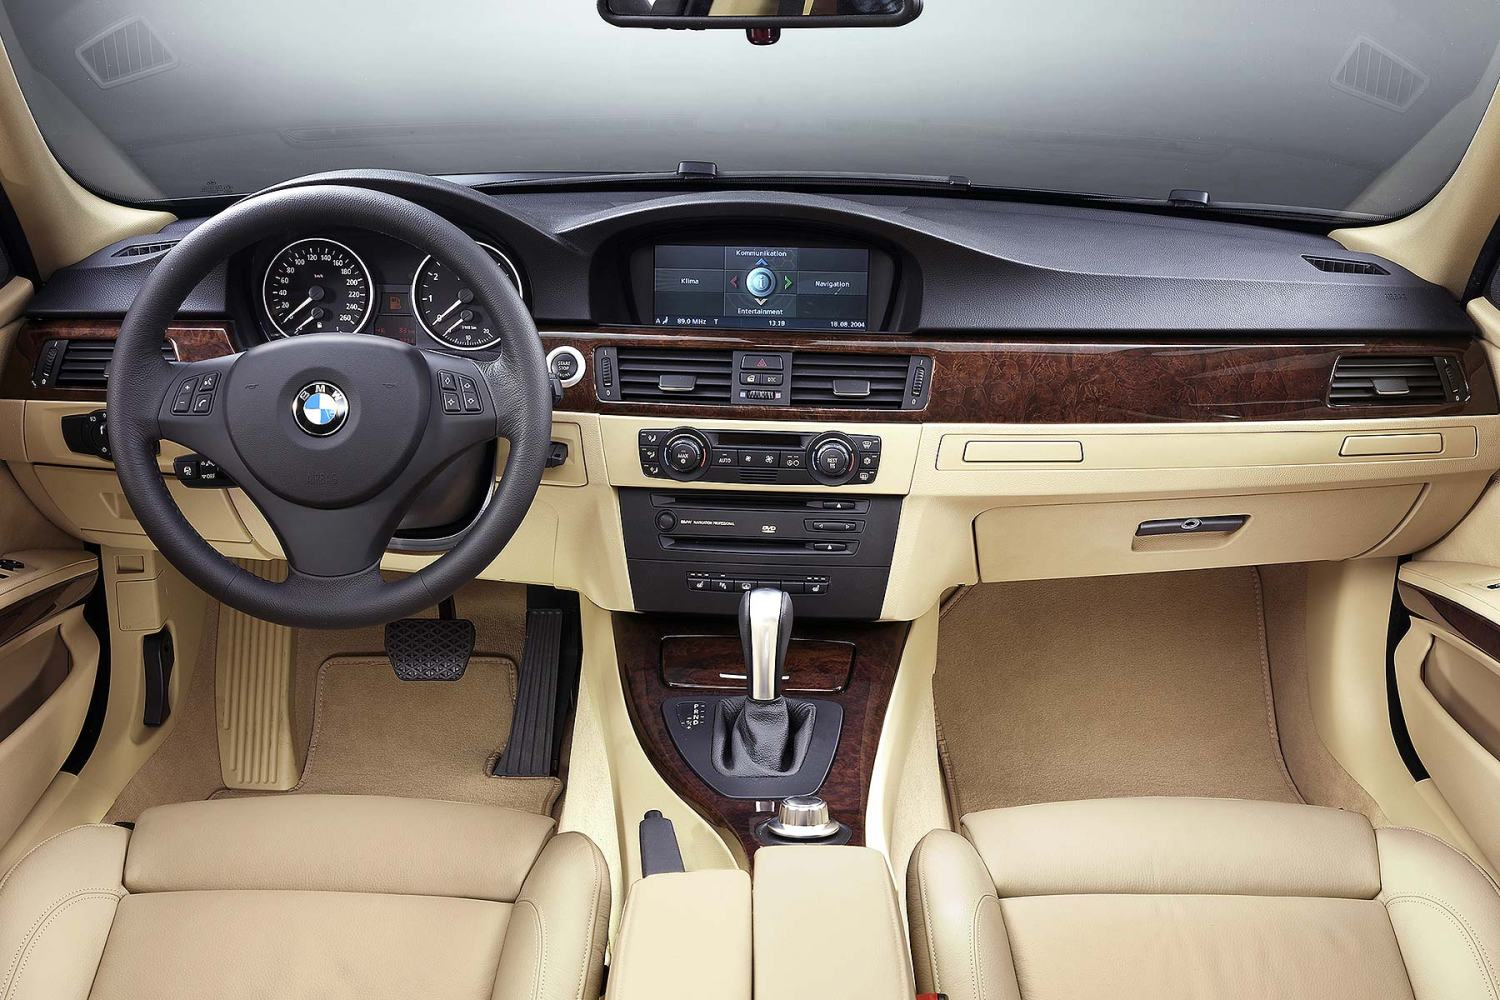 BMW iDrive is no more: say hey, BMW Cockpit | Motoring Research